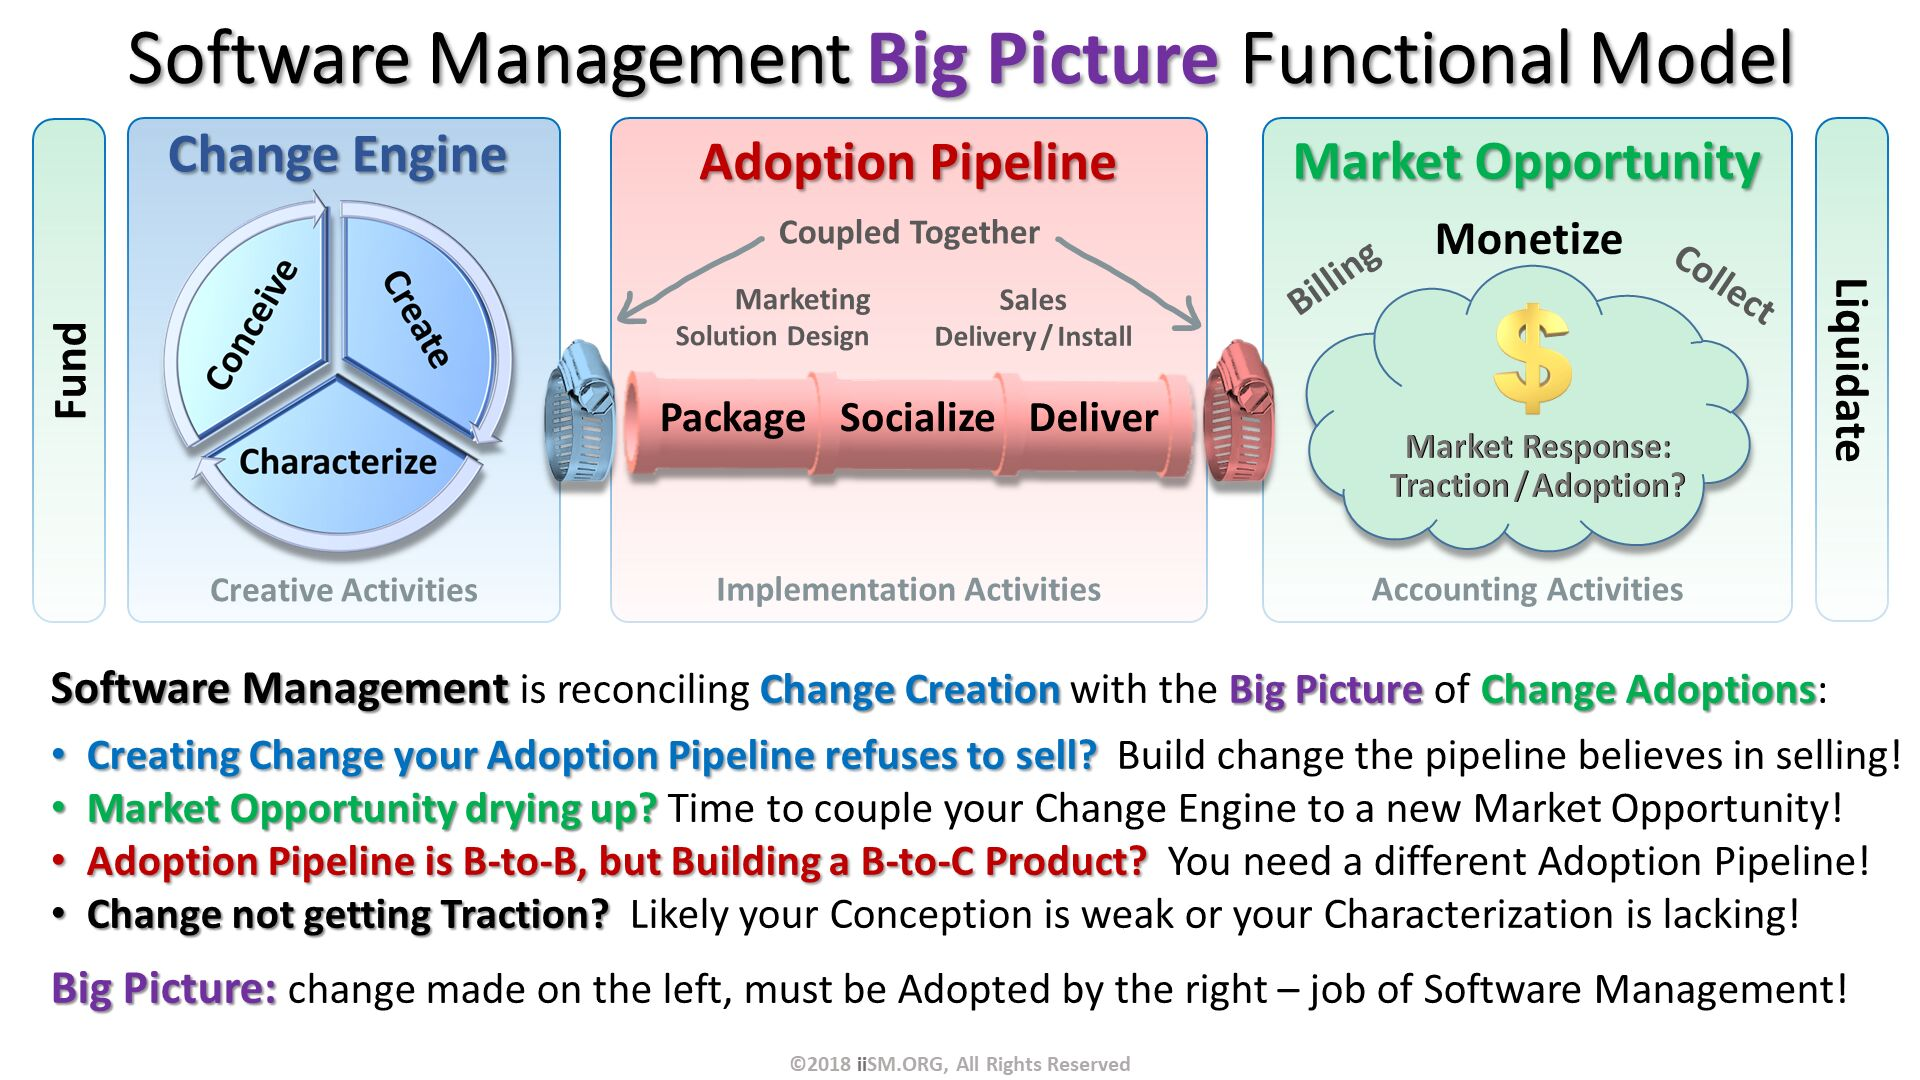 Software Management Big Picture Functional Model. Software Management is reconciling Change Creation with the Big Picture of Change Adoptions: Creating Change your Adoption Pipeline refuses to sell?  Build change the pipeline believes in selling! Market Opportunity drying up? Time to couple your Change Engine to a new Market Opportunity! Adoption Pipeline is B-to-B, but Building a B-to-C Product?  You need a different Adoption Pipeline! Change not getting Traction?  Likely your Conception is weak or your Characterization is lacking! Big Picture: change made on the left, must be Adopted by the right – job of Software Management!. ©2018 iiSM.ORG, All Rights Reserved.